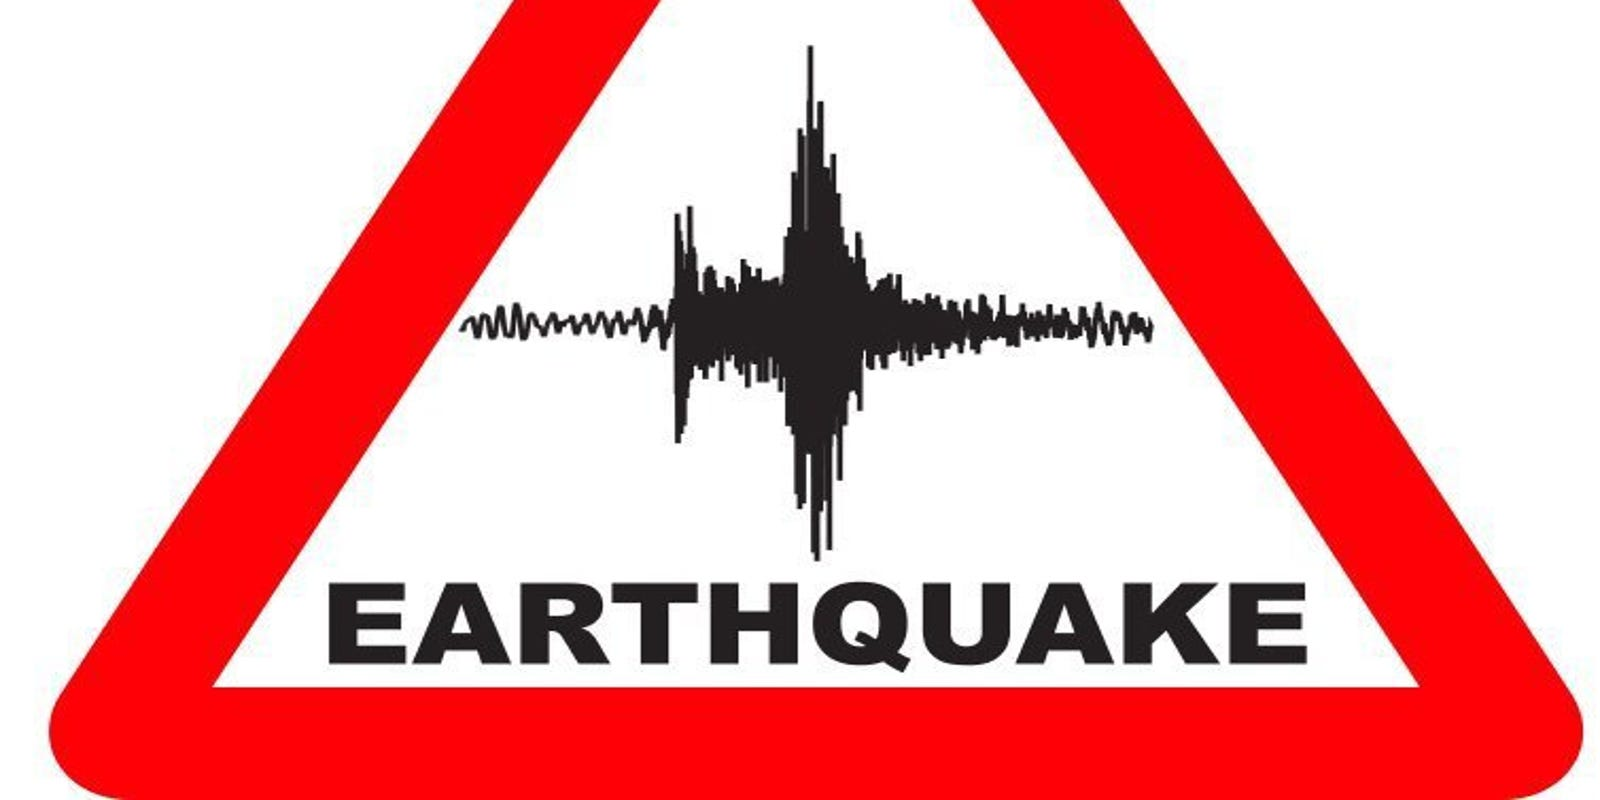 Redding news roundup: Two small earthquakes hit Cottonwood area